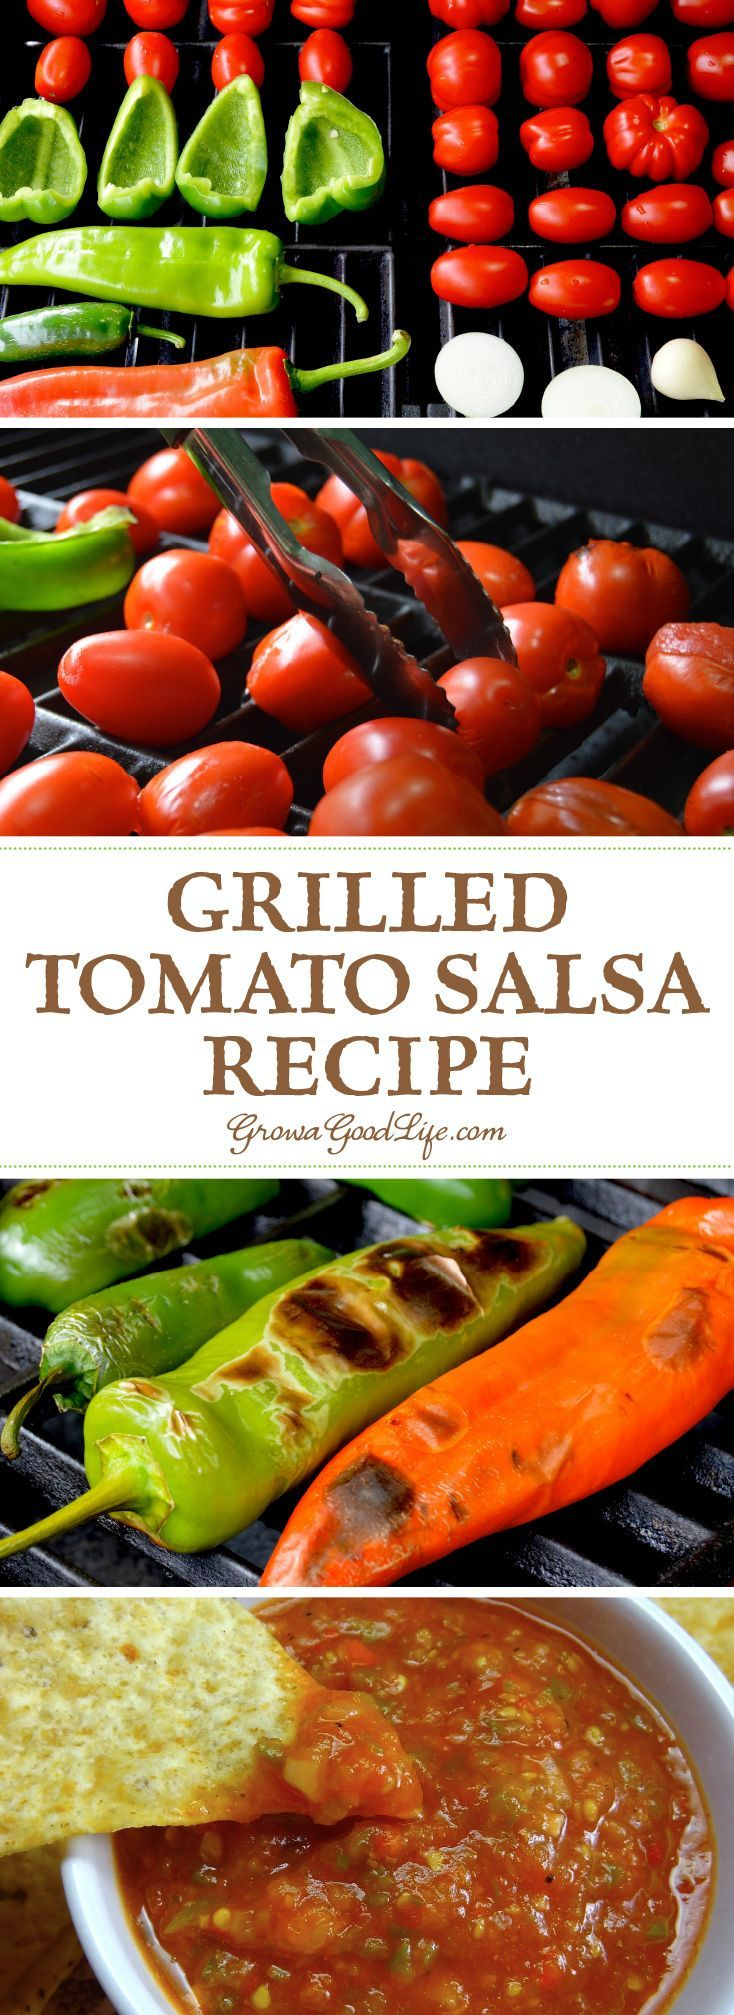 This tomato salsa recipe adds delicious depth of flavor from grilling the vegetables. The flavors transform to a delightful blend of sweet, smoky char, with a spicy kick that makes you crave for more.